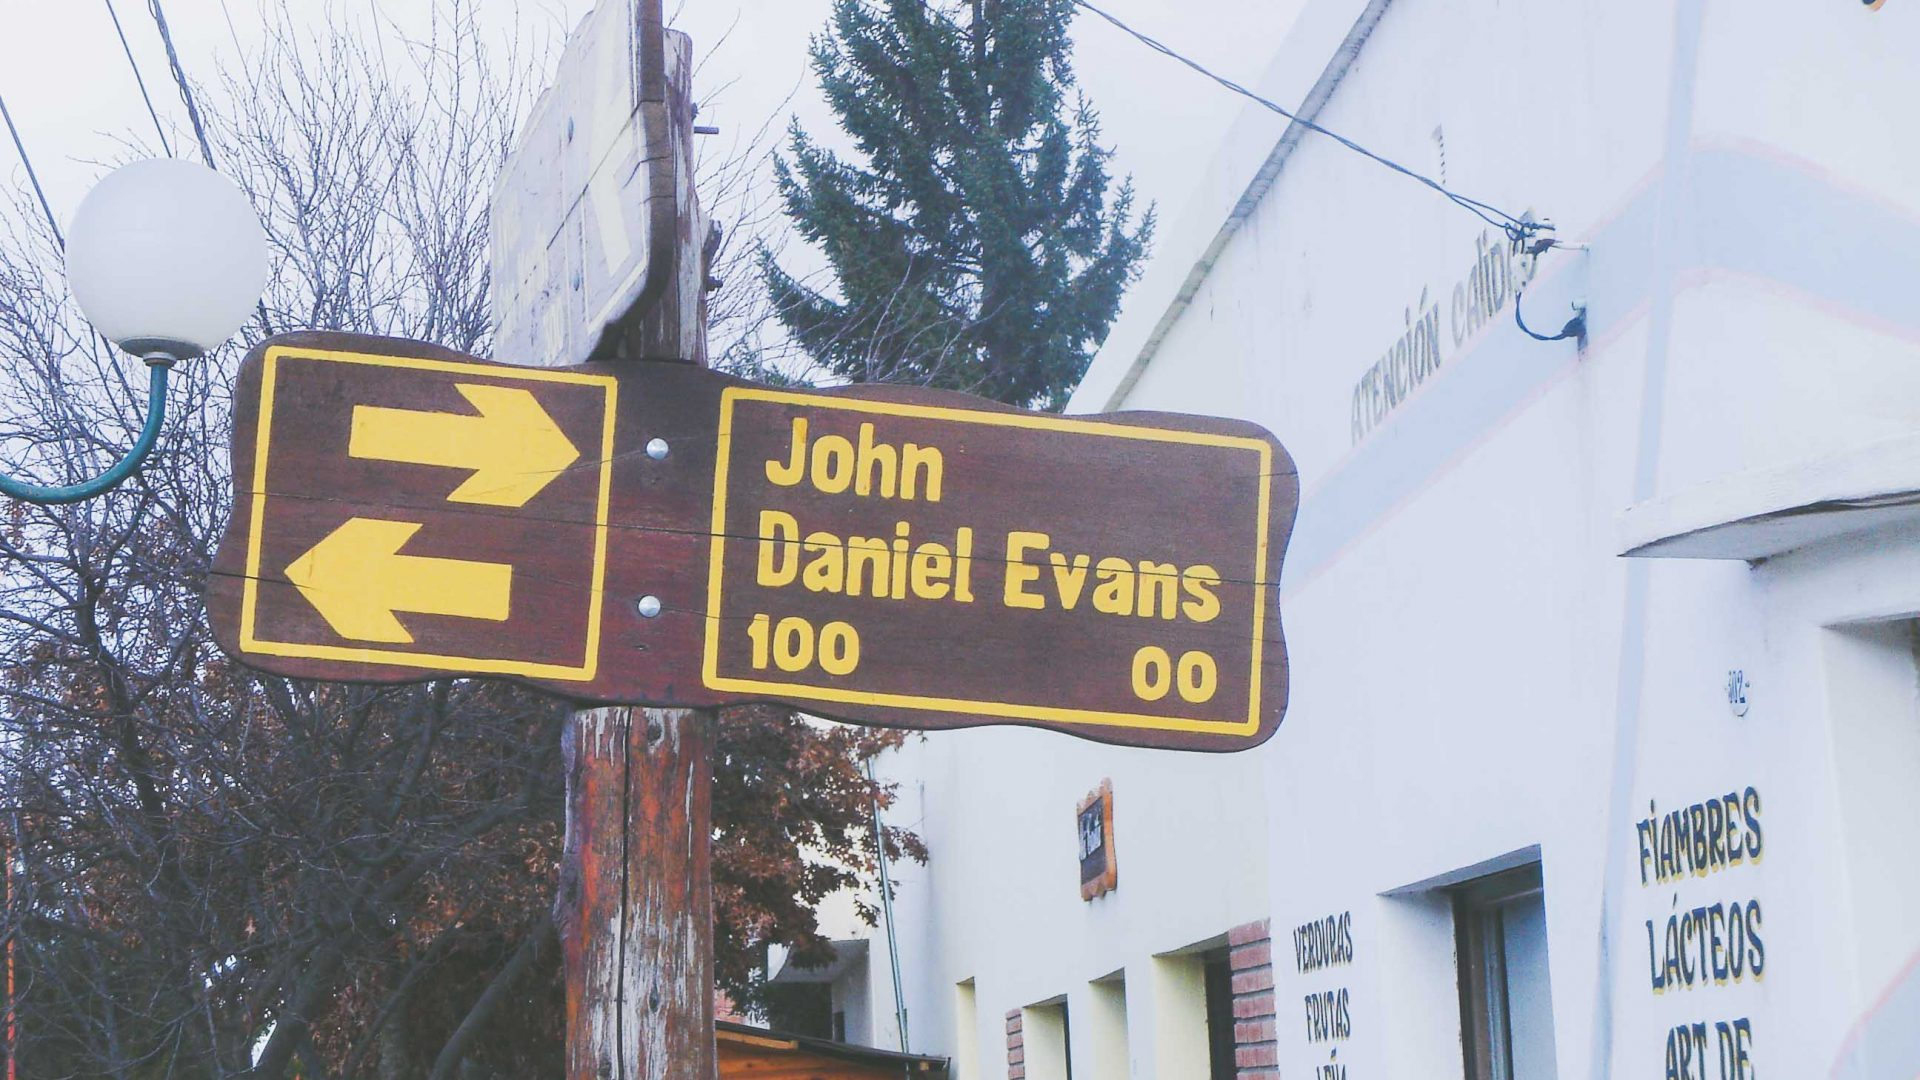 A John Daniel Evans sign in Trevelin, Argentinian Patagonia.